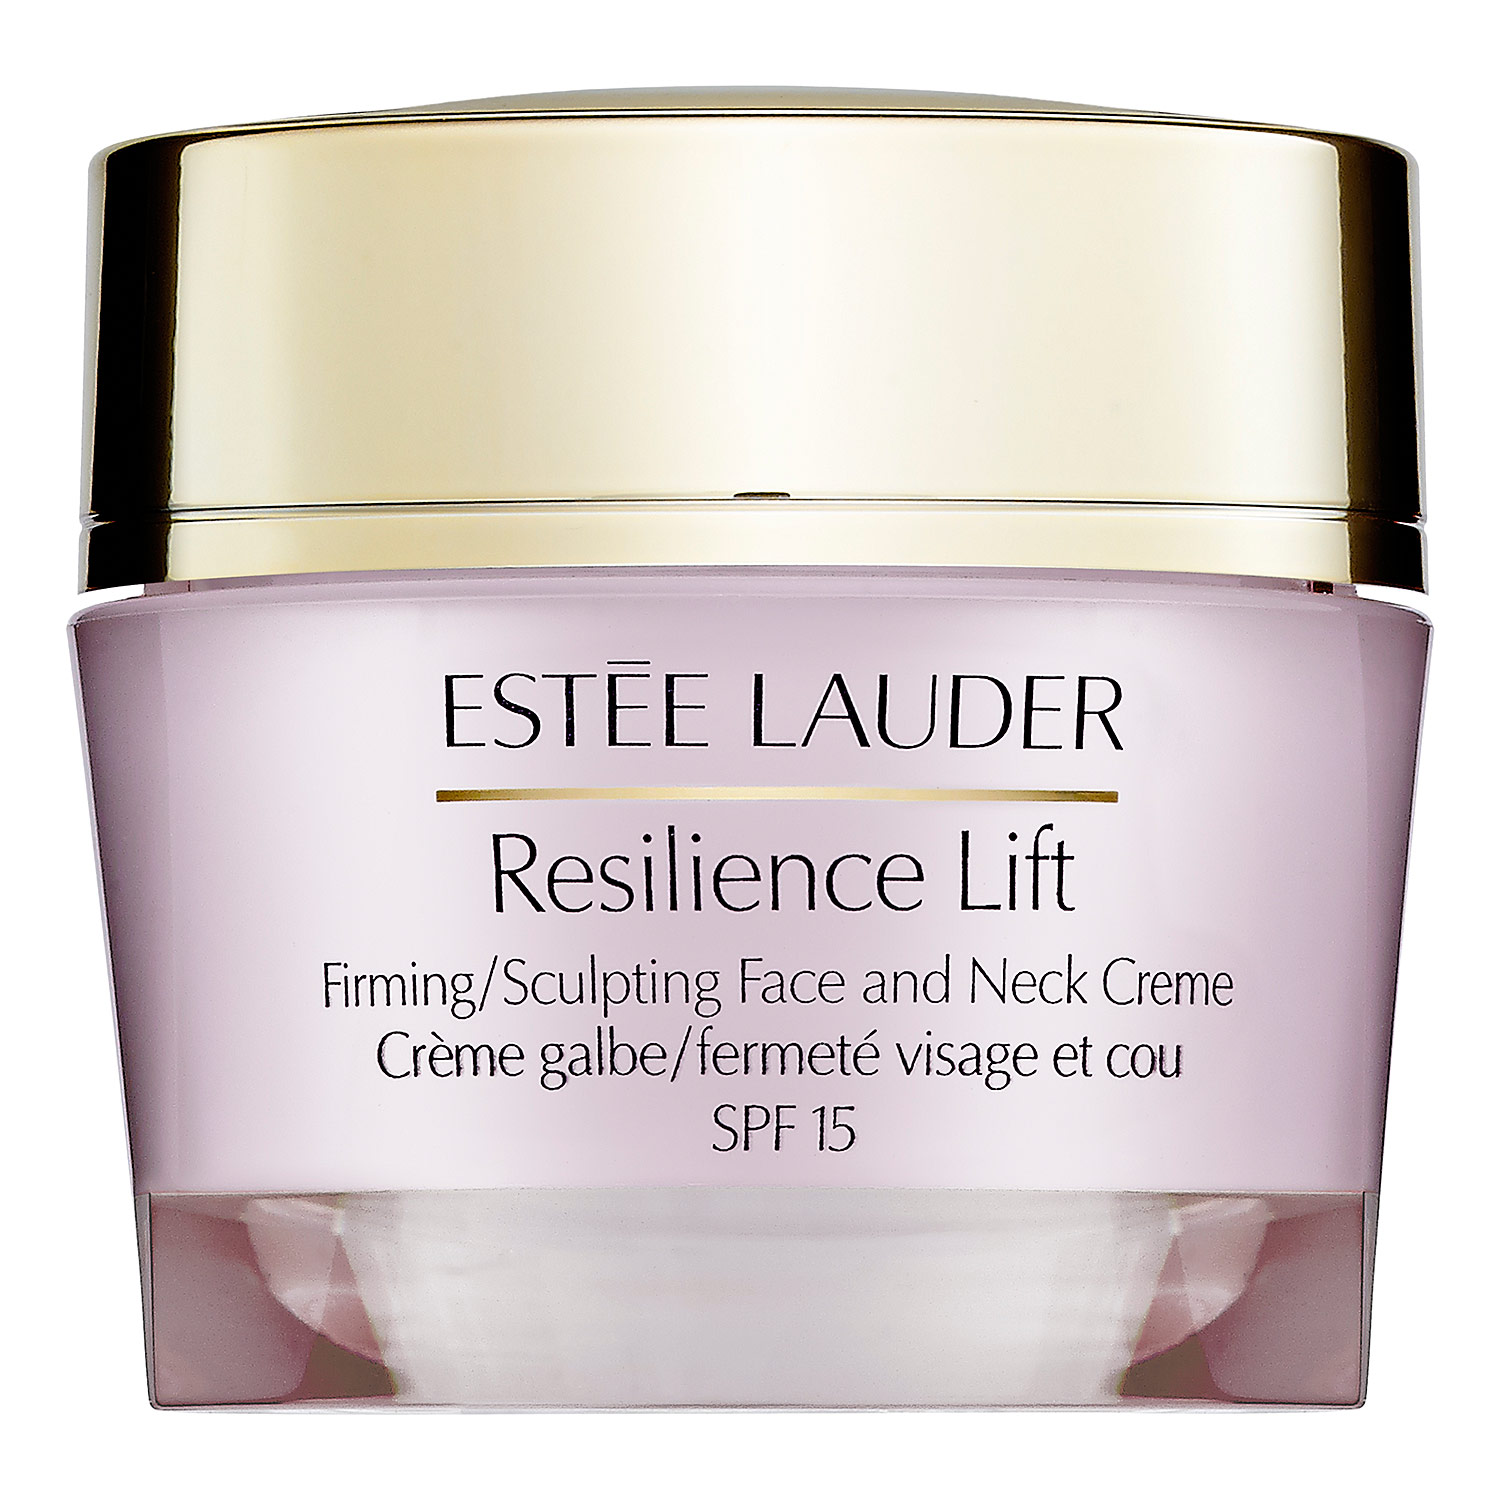 Estee Lauder Resilience Lift Firming/Sculpting Face and Neck Crème